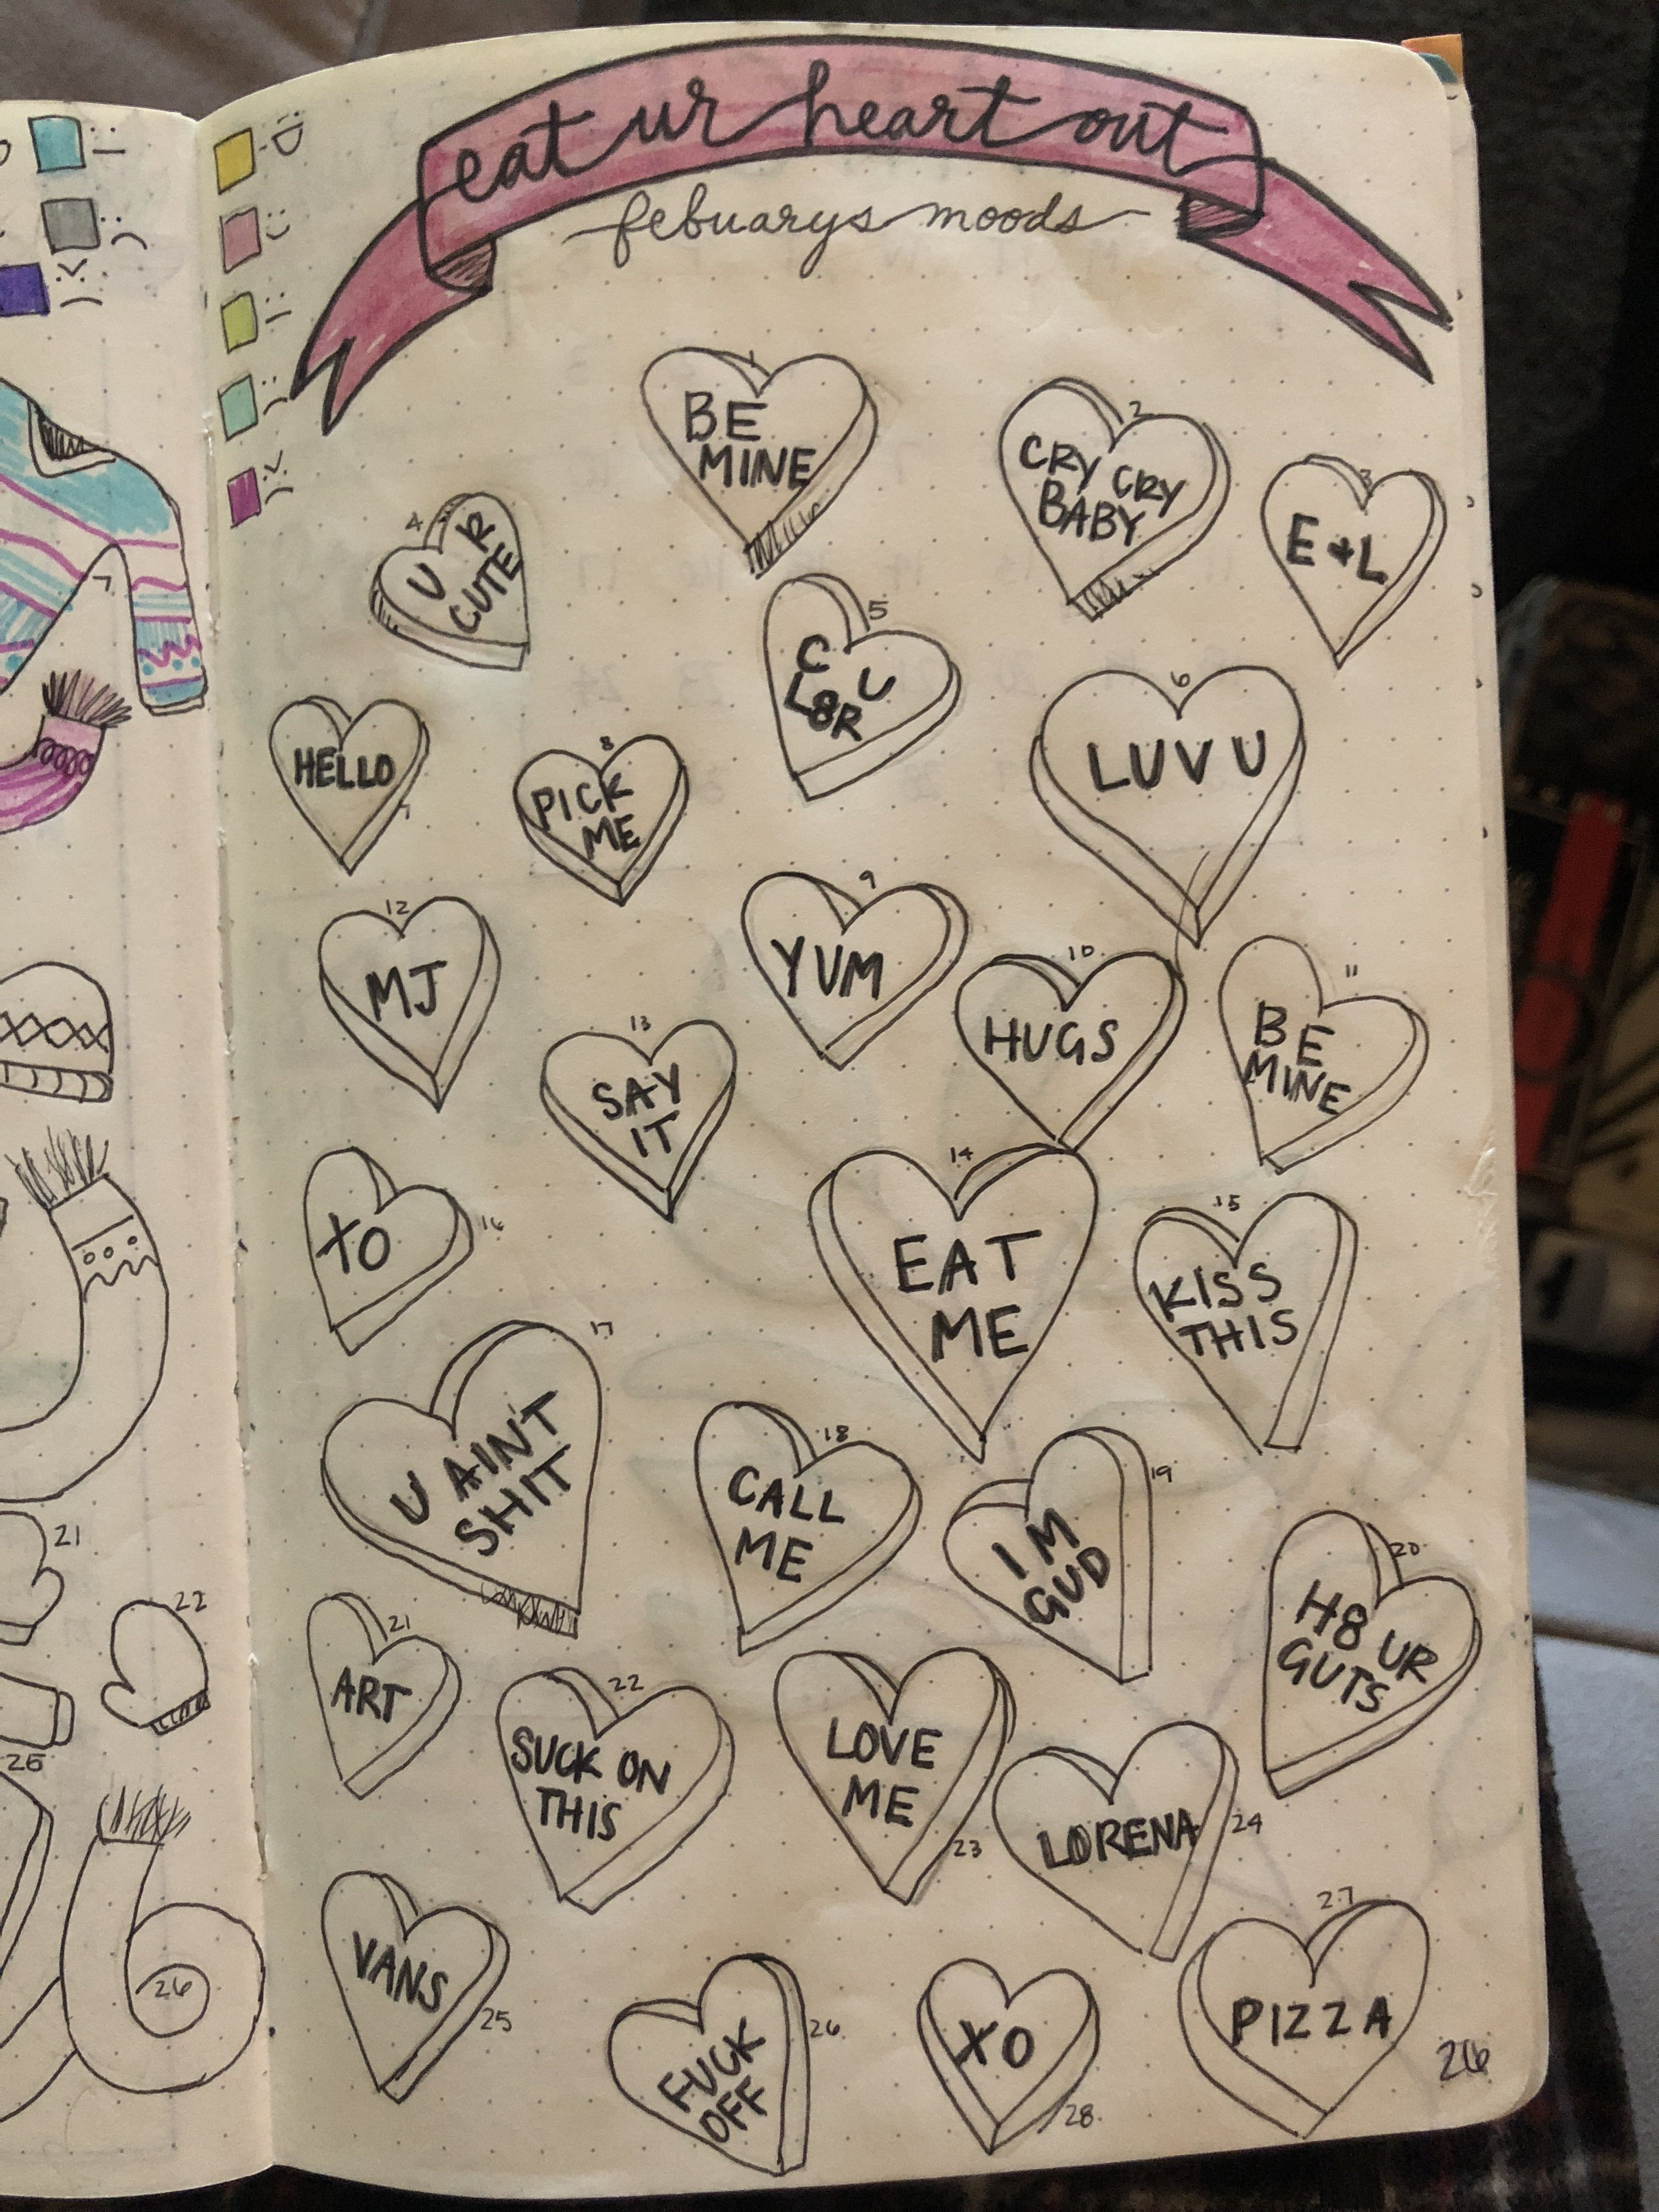 February mood tracker, inappropriate candy hearts for the ...